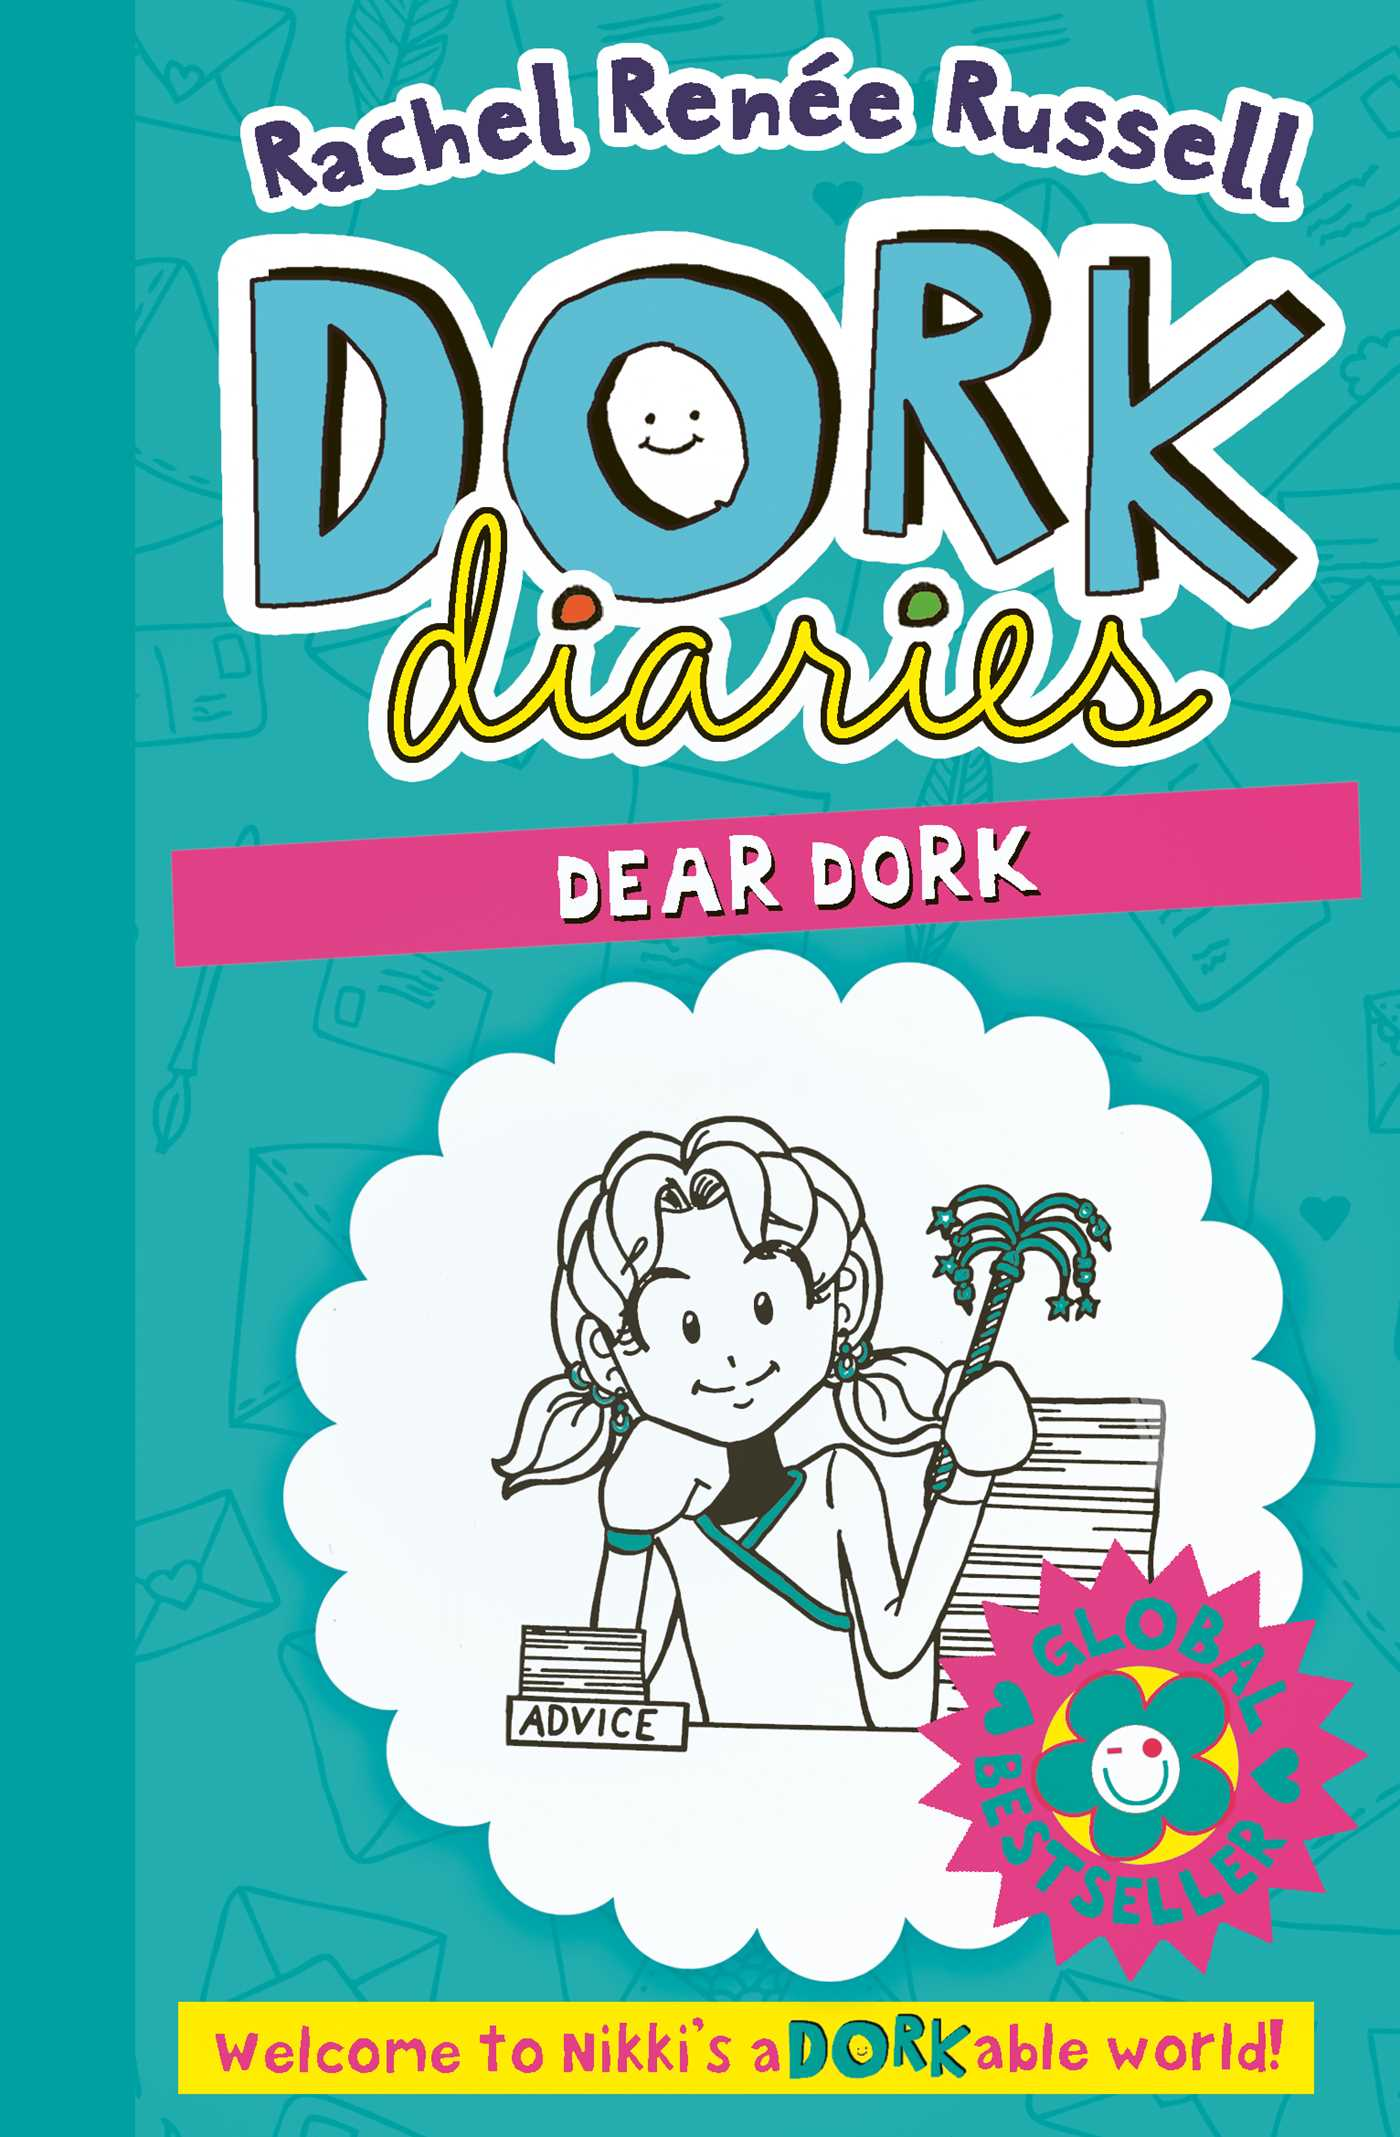 Dork diaries dear dork 9780857079374 hr